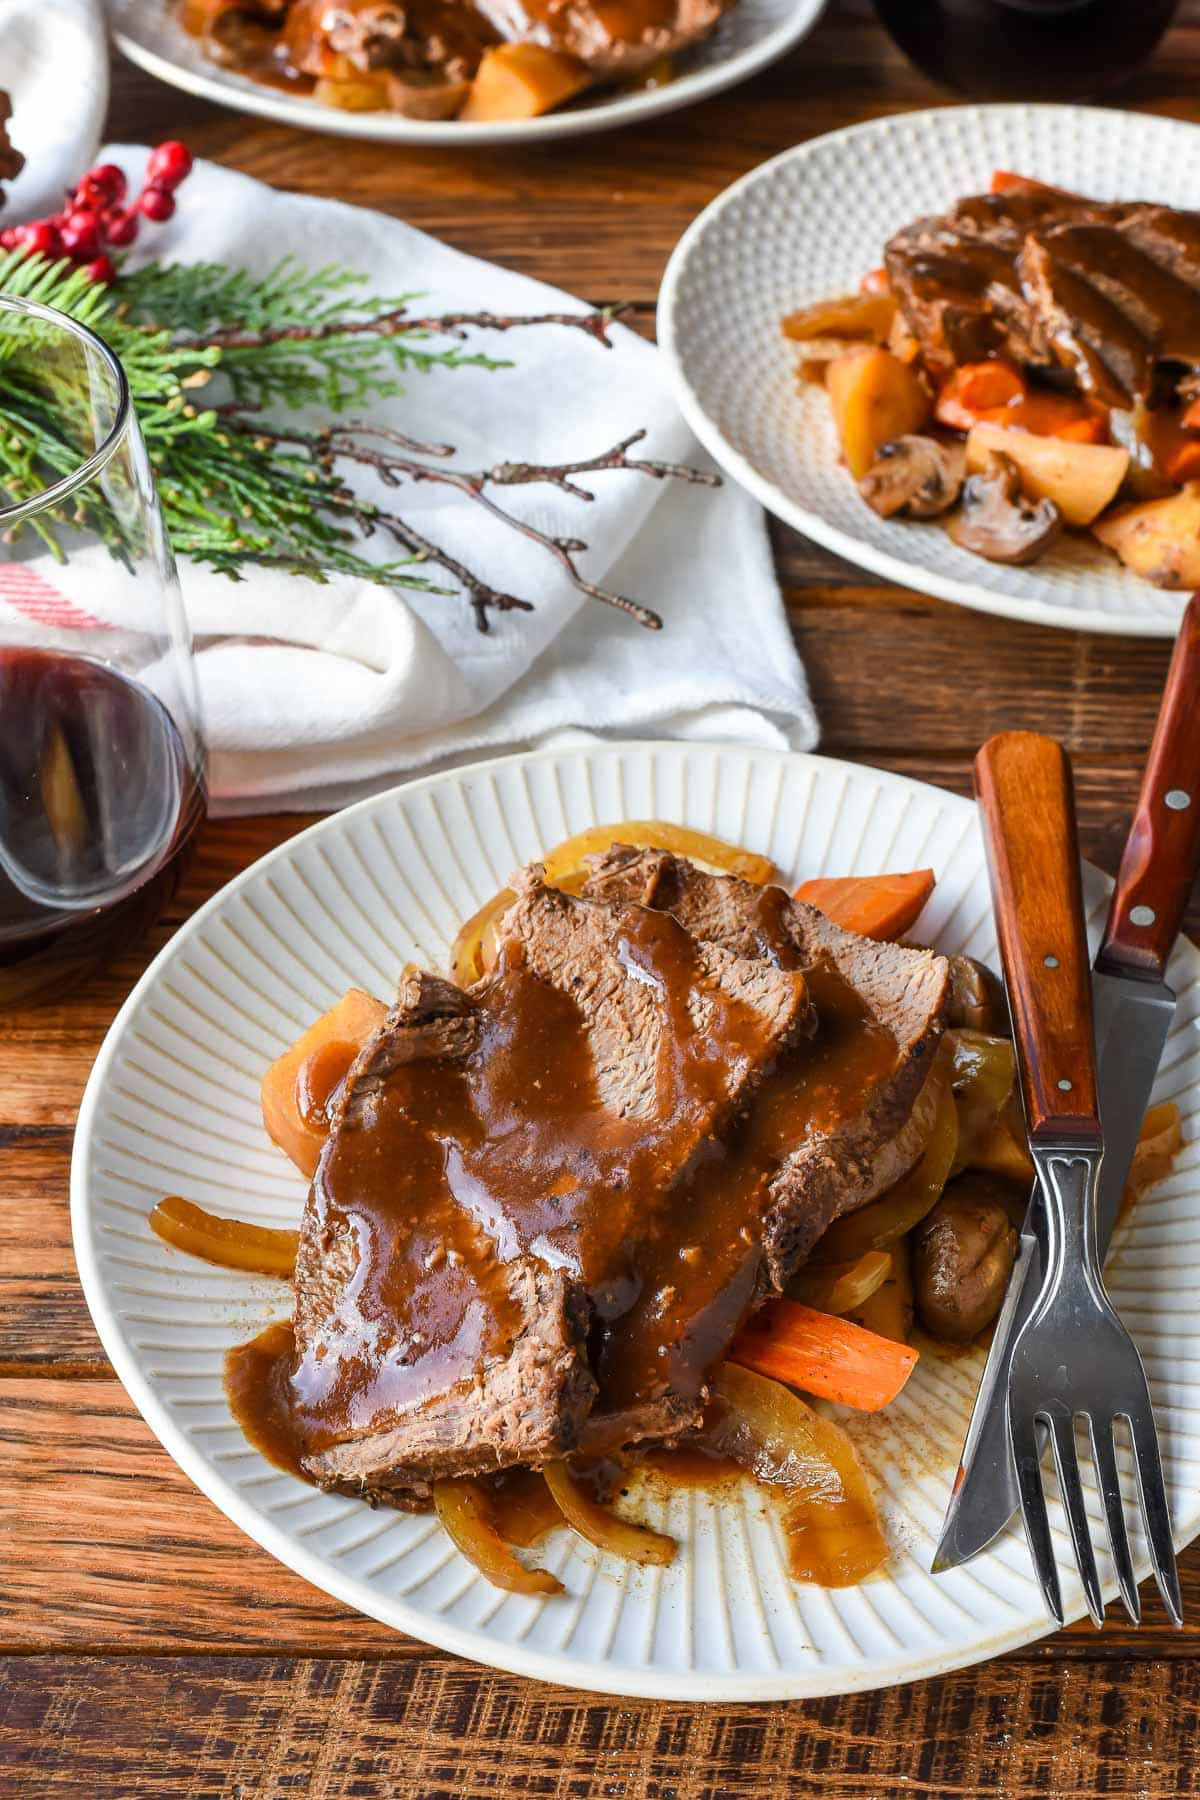 This rich and tangy Slow Cooker Balsamic Roast is a simple but gorgeous meal for any occasion.